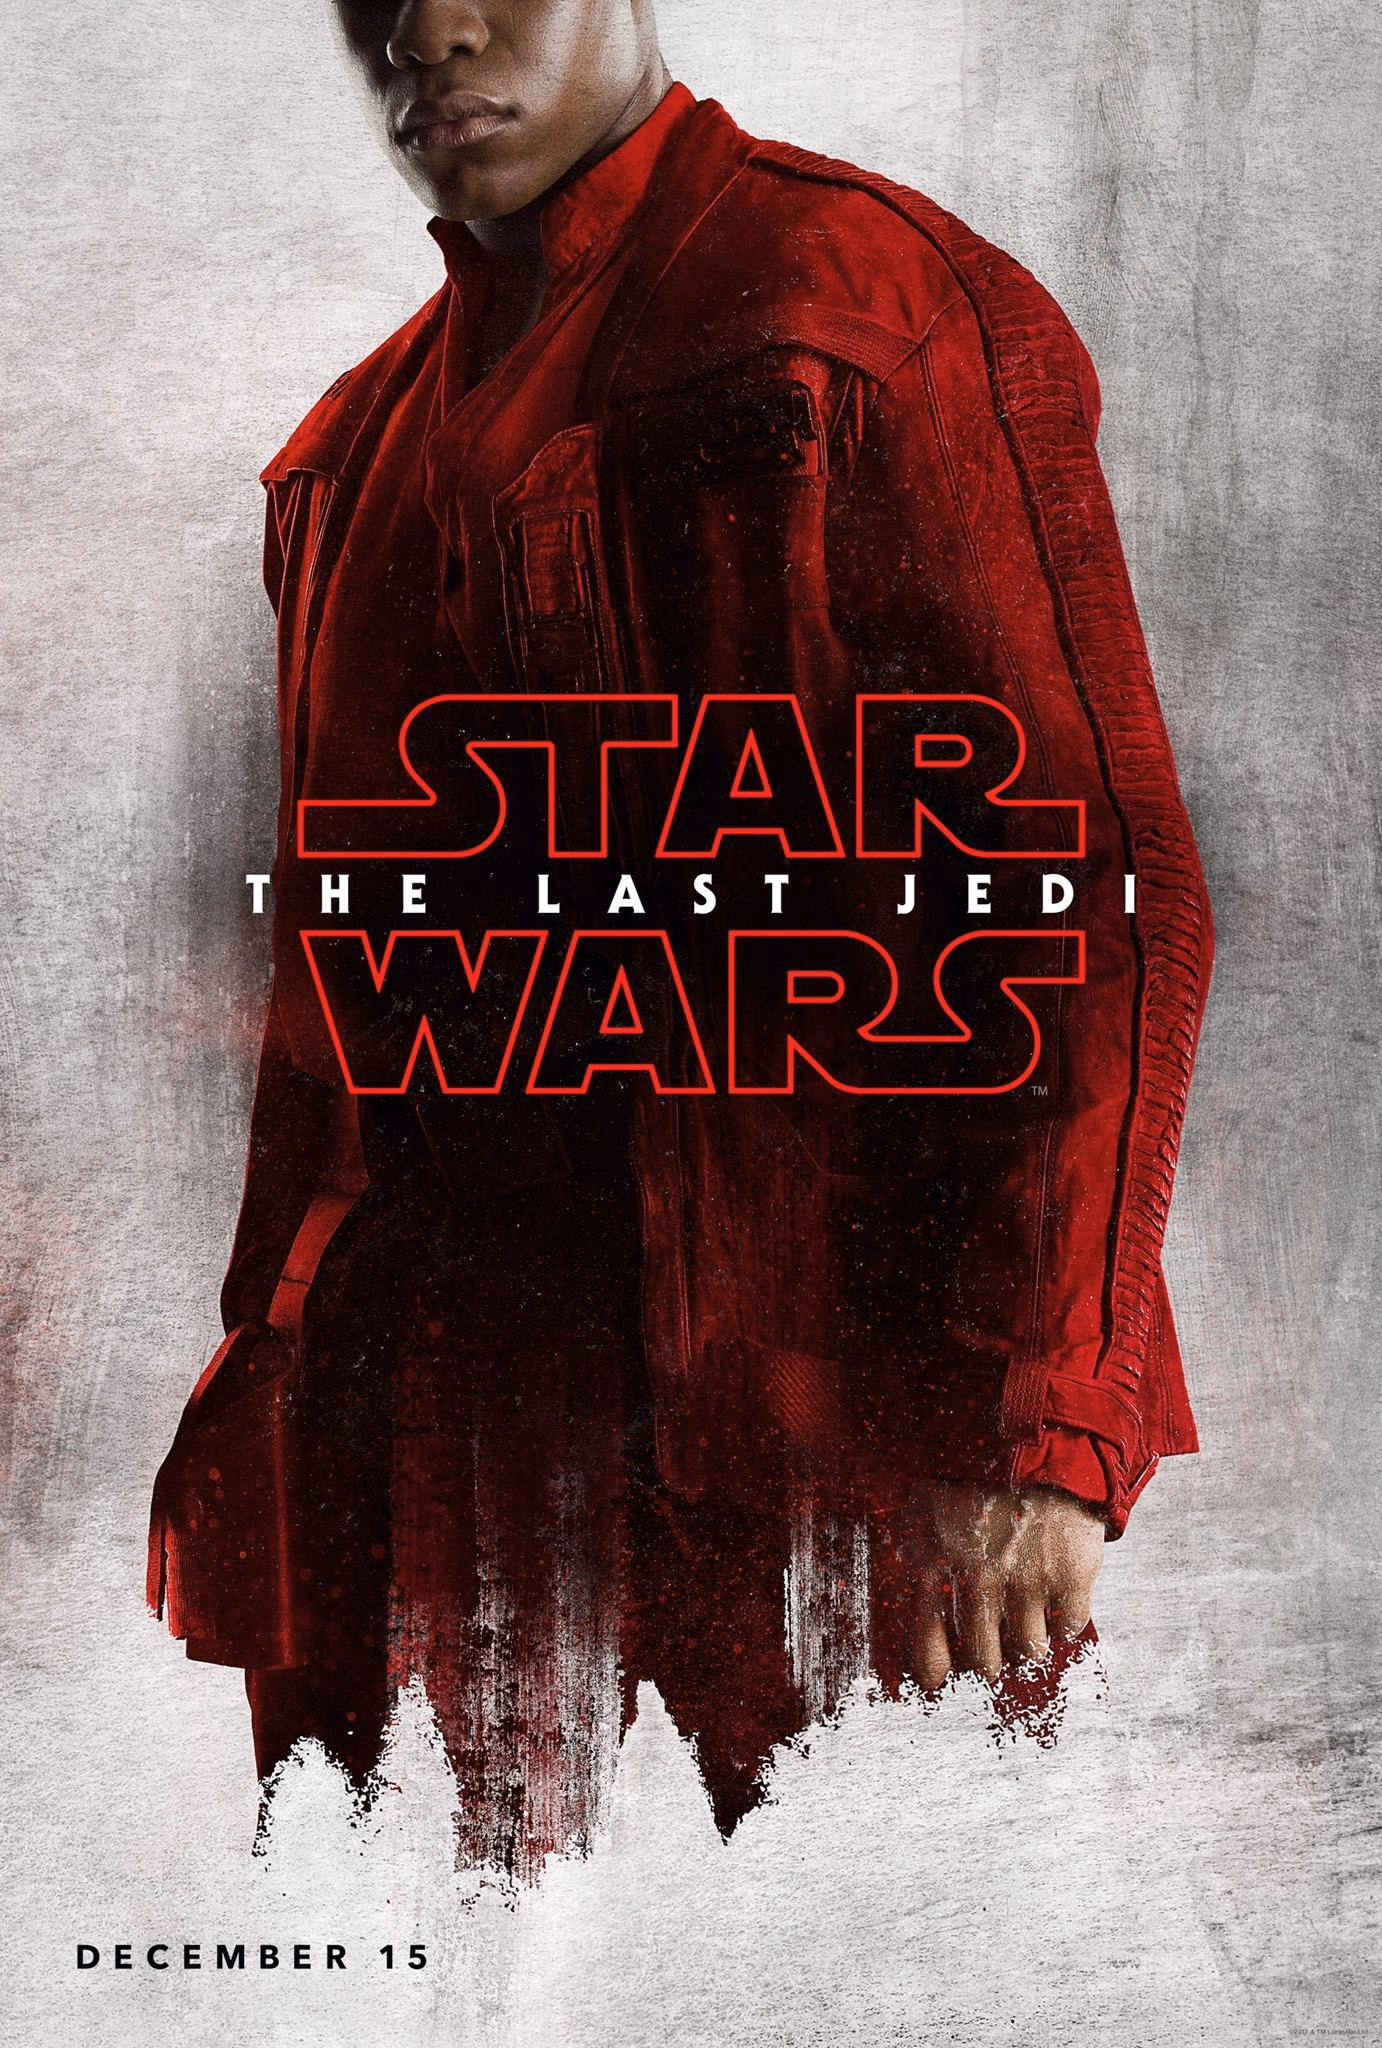 https://www.starwars-universe.com/images/actualites/episode8/affiches/02.jpg